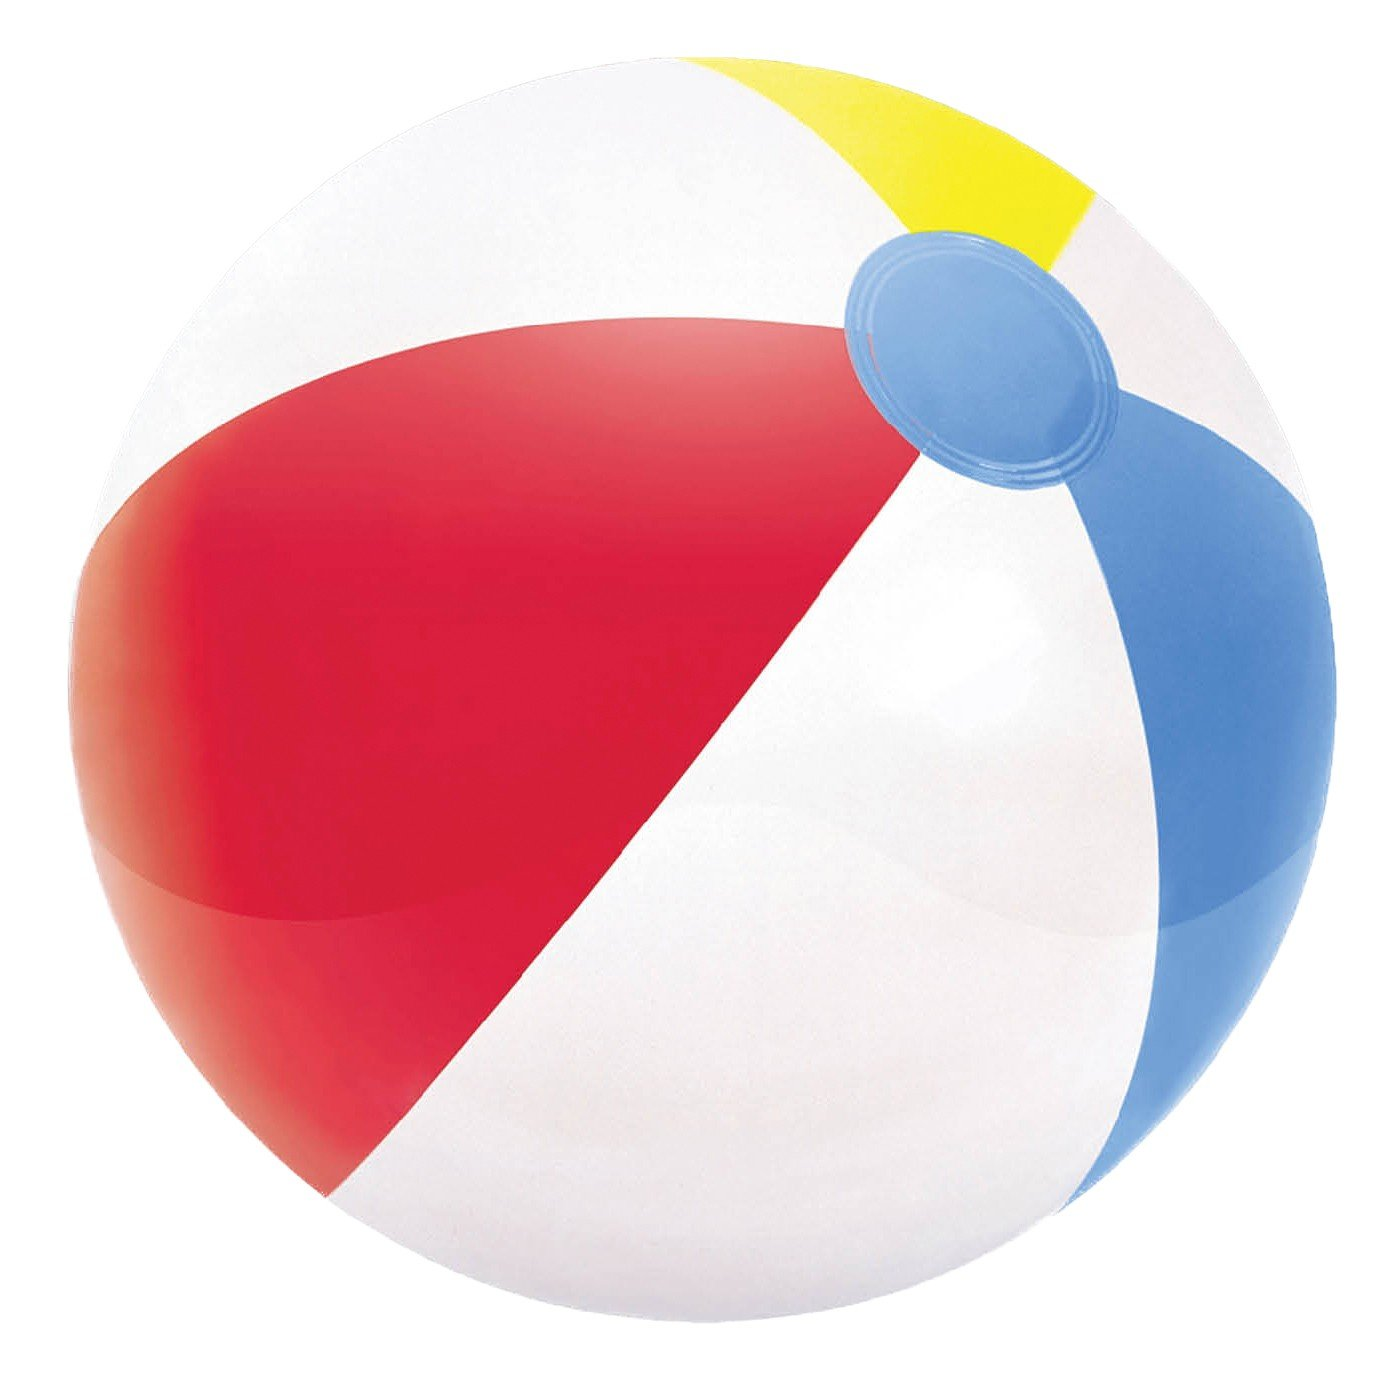 Solmar - Pelota Hinchable para Playa o Piscina 41 cm: Amazon.es ...